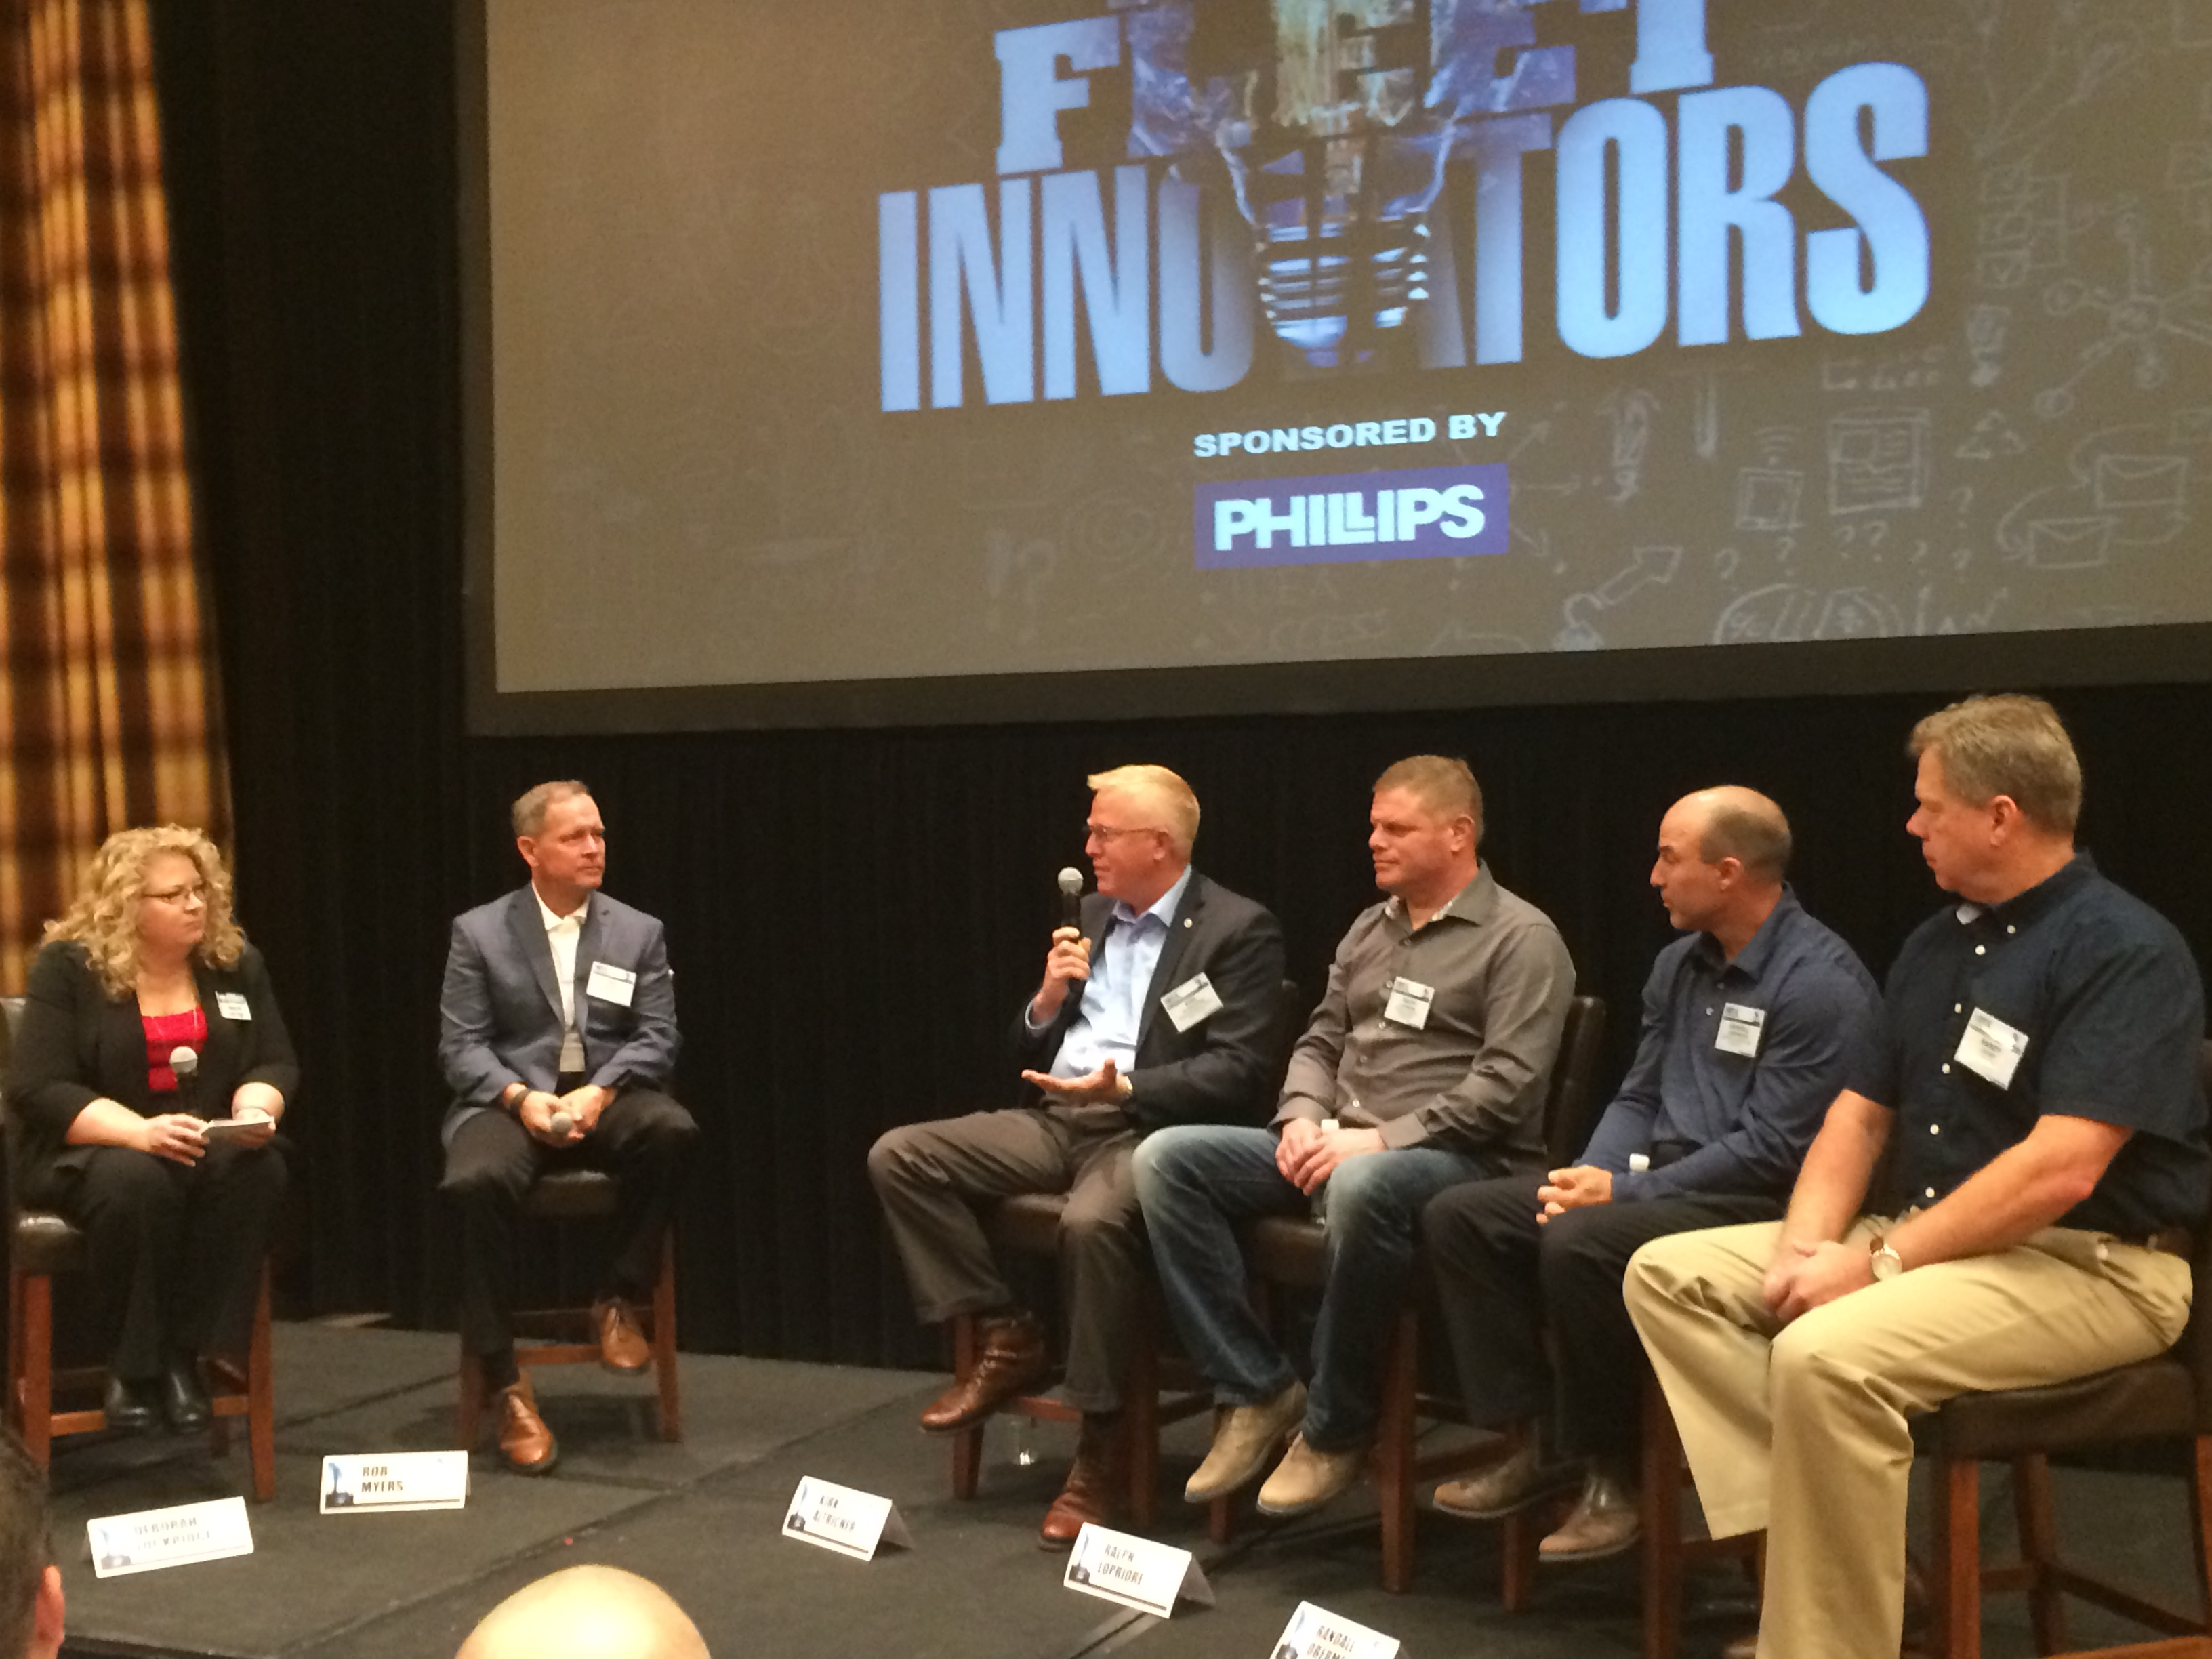 HDT Truck Fleet Innovators: It Pays to Focus on Data and People